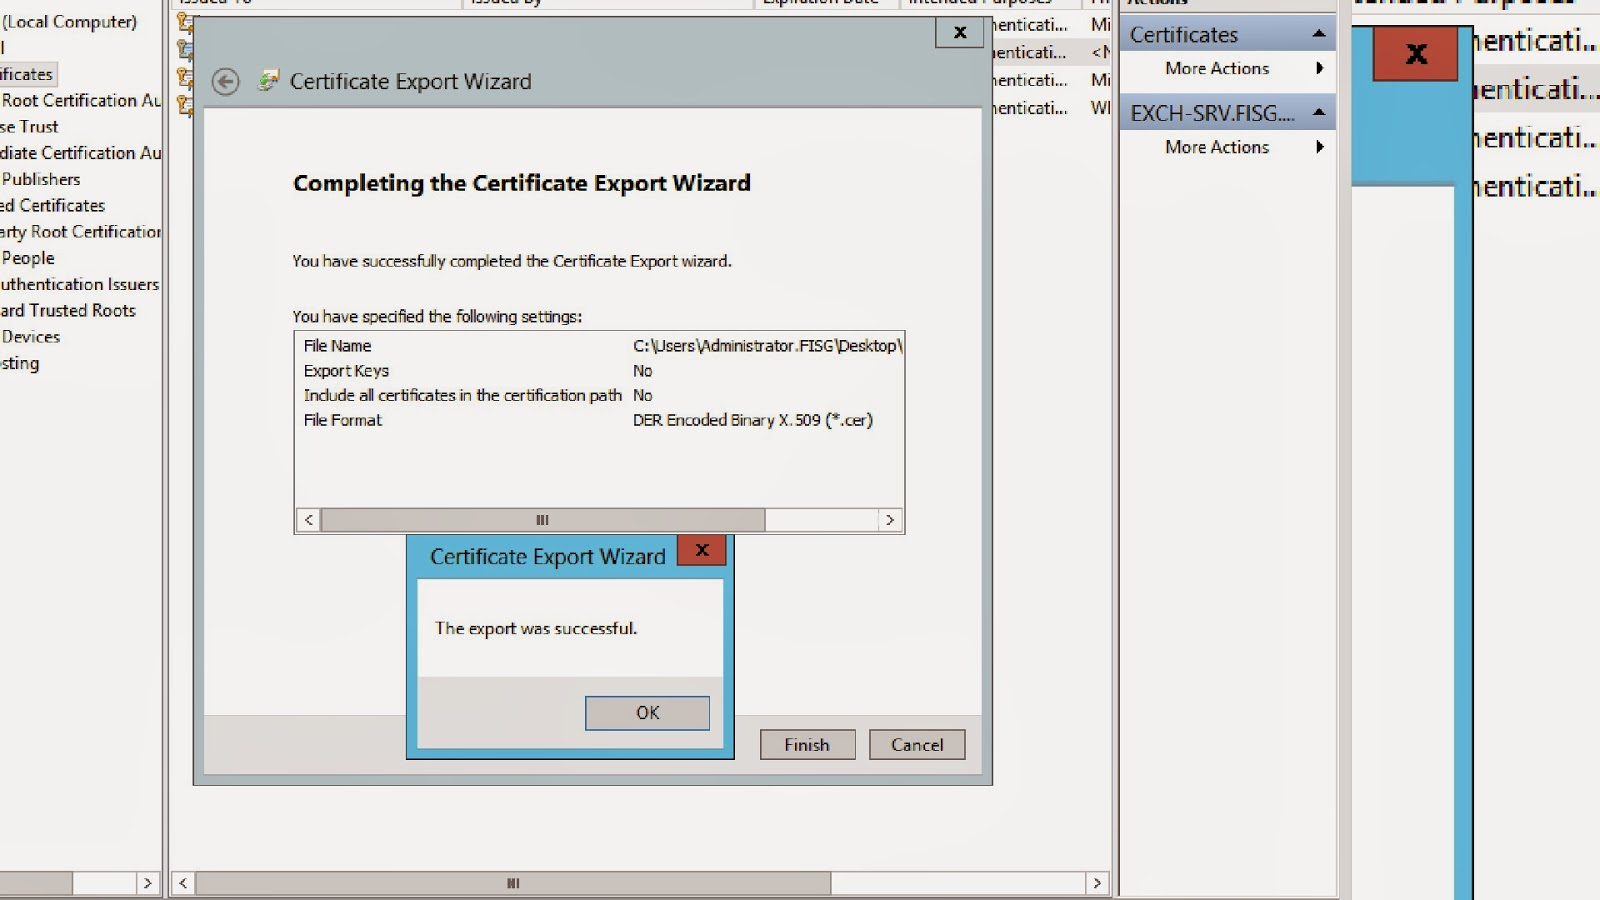 Fisg florida it server group deploying an internal pki for you now have a certificate for your azure recovery services vault in the azure platform 1betcityfo Image collections